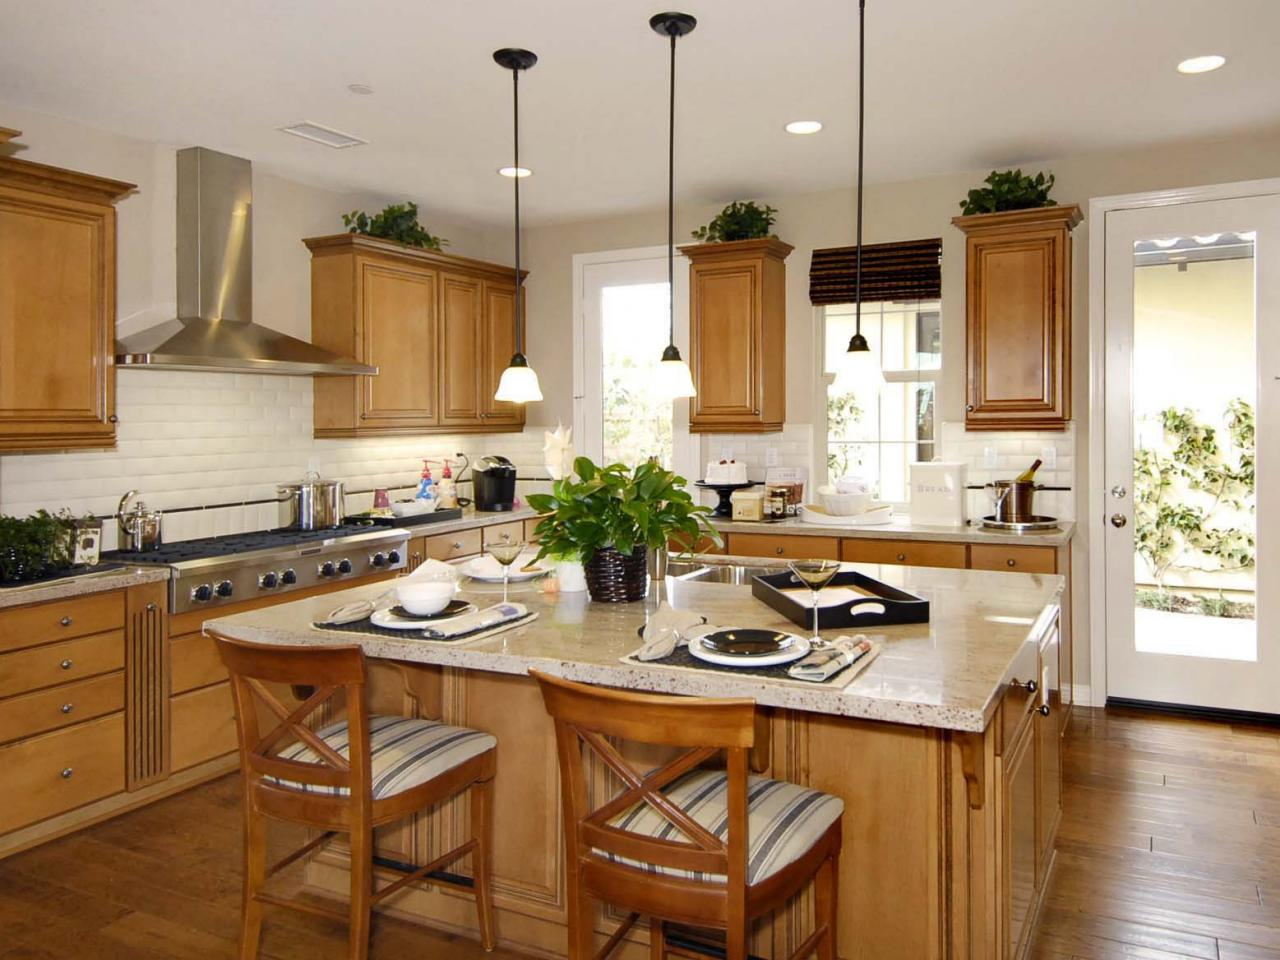 kitchen countertop ideas cheap kitchen countertops: pictures, options u0026 ideas | hgtv ESOOLVZ